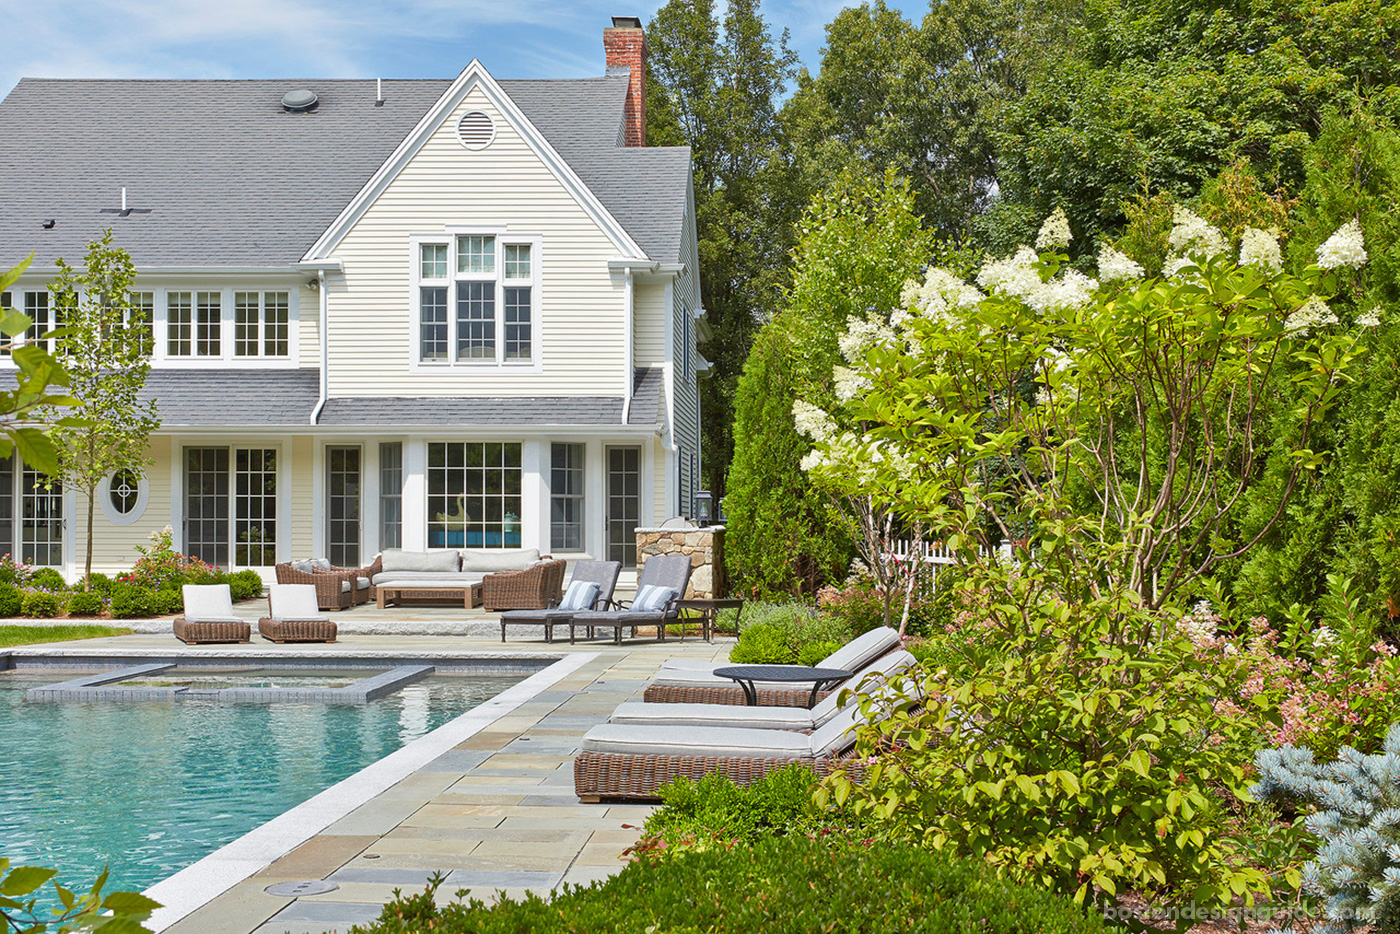 High-end Boston landscape design